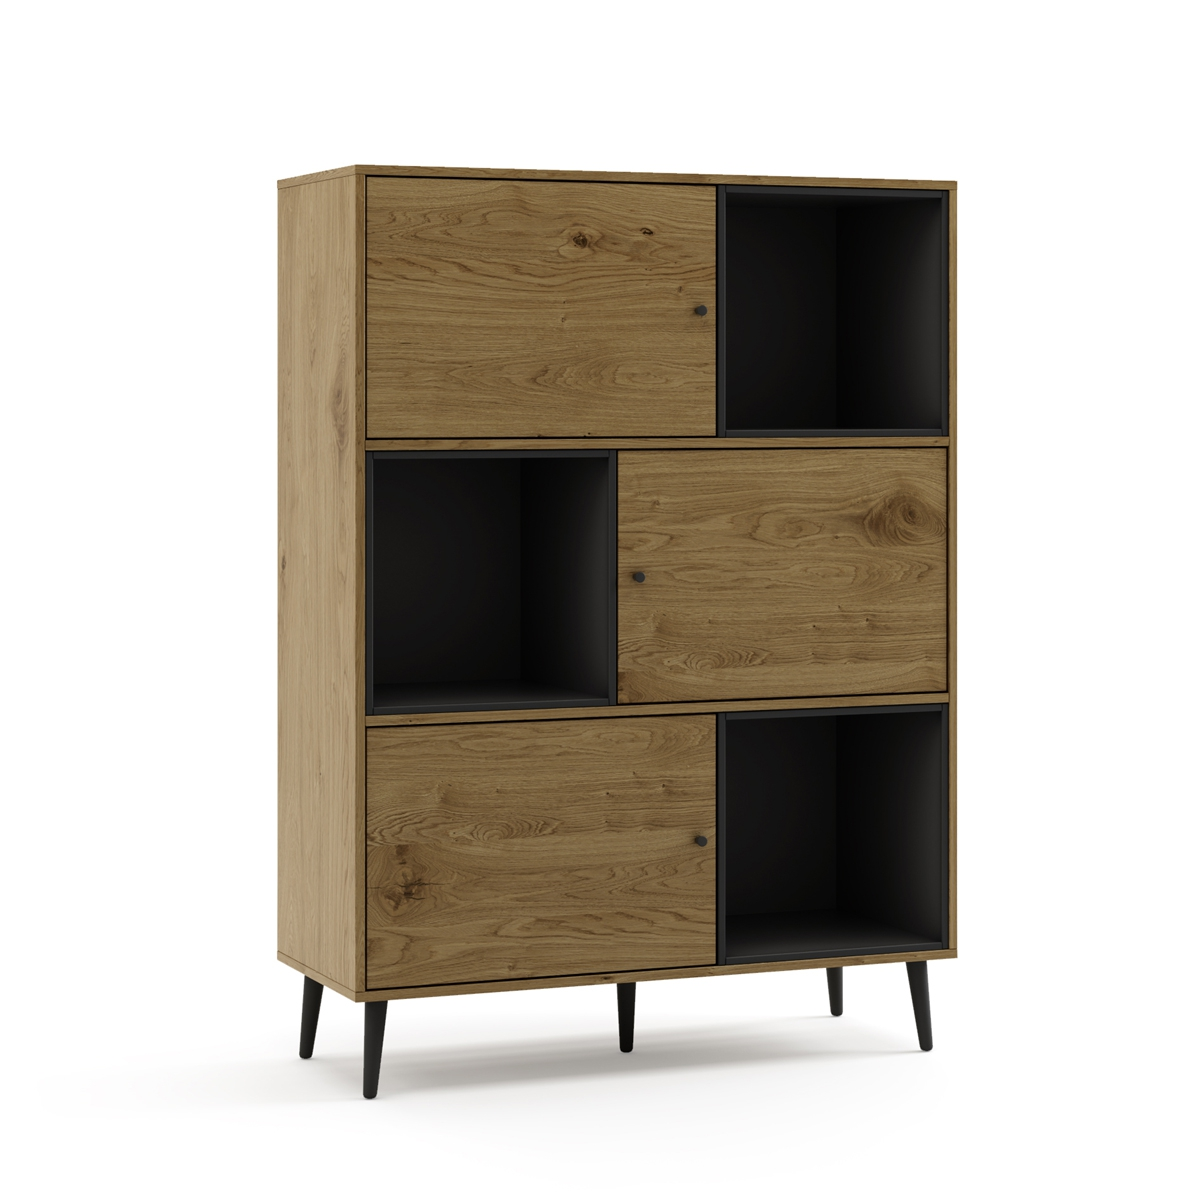 Furniture De Shelves Wood Natural And Black, Wall Shelving Books Salon Dining Room Dorm Room's Design Nordic 100x40x135cm